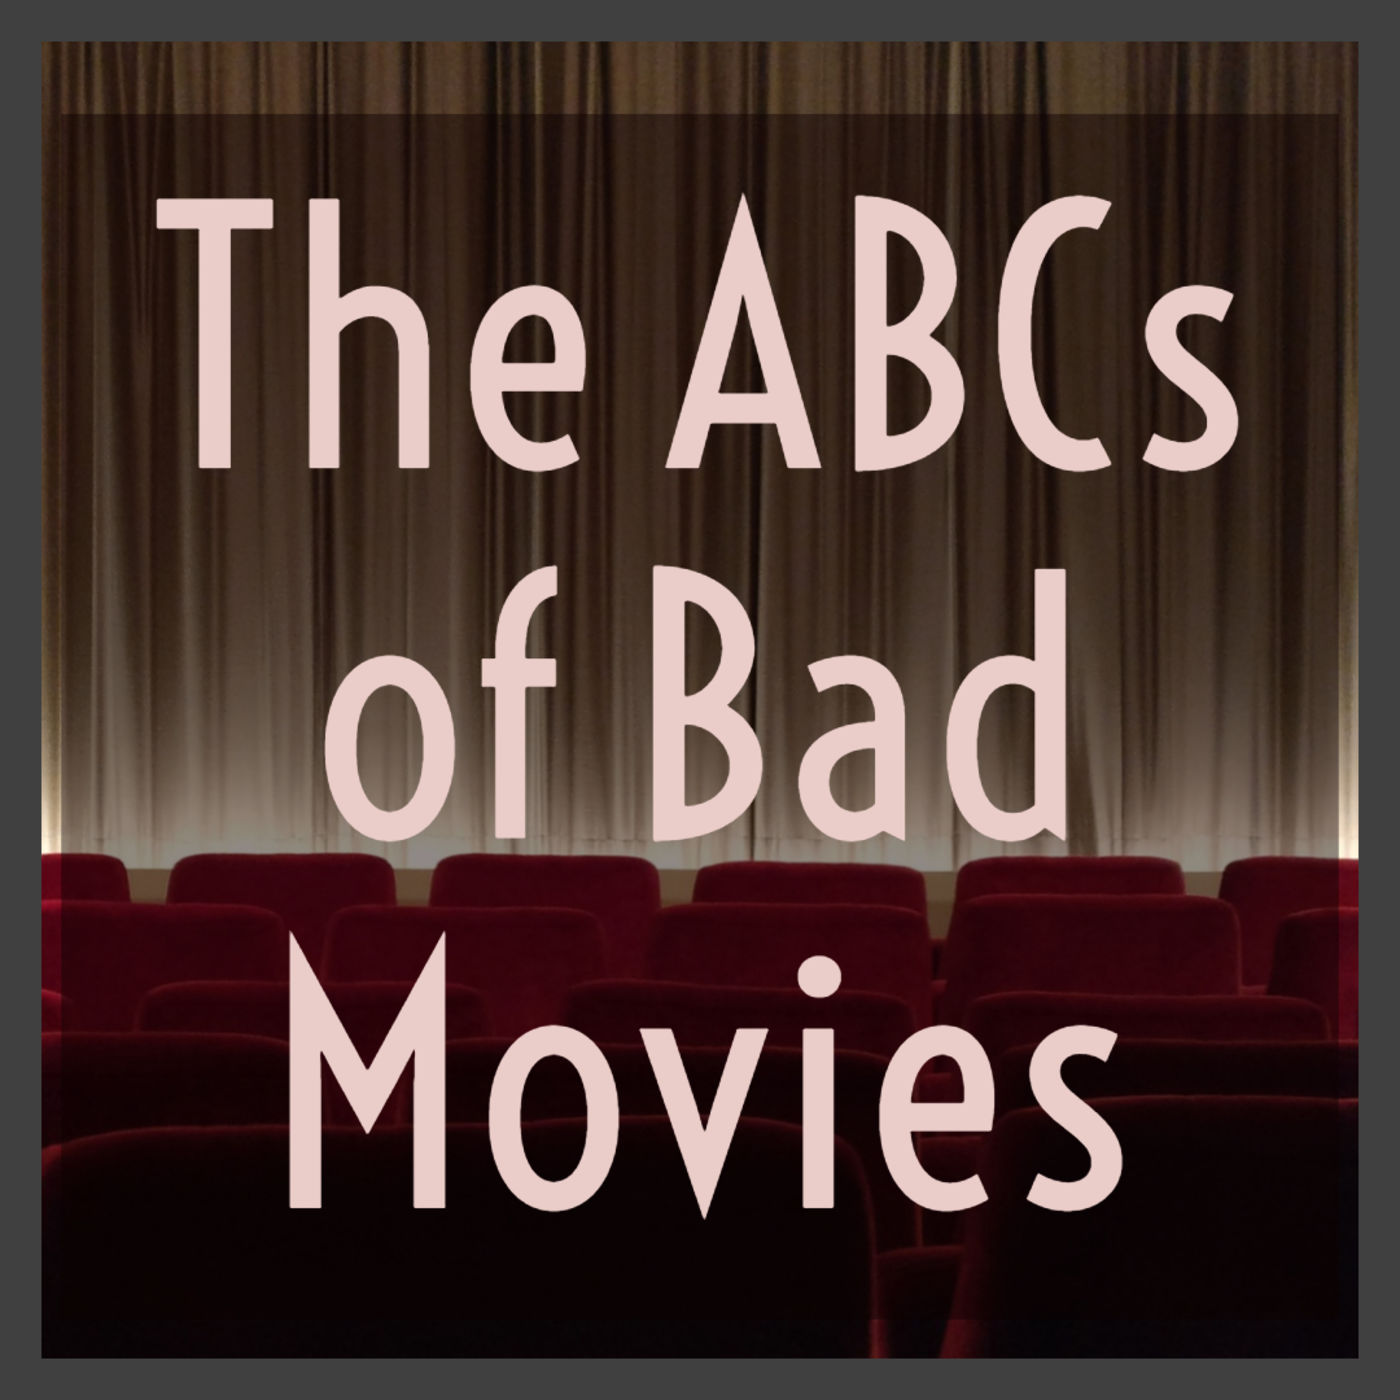 The ABCs of Bad Movies